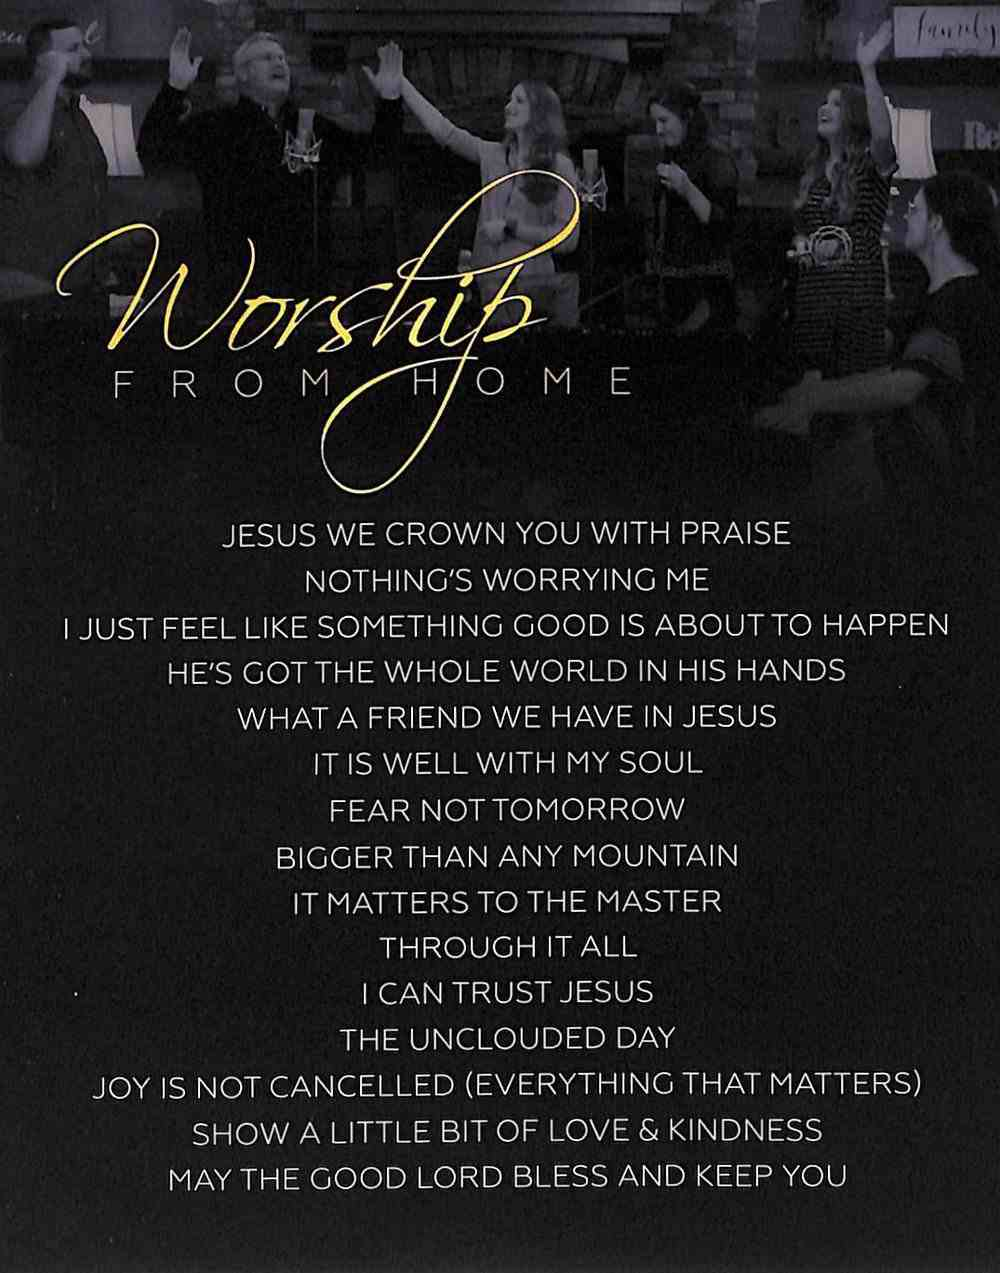 Worship From Home DVD